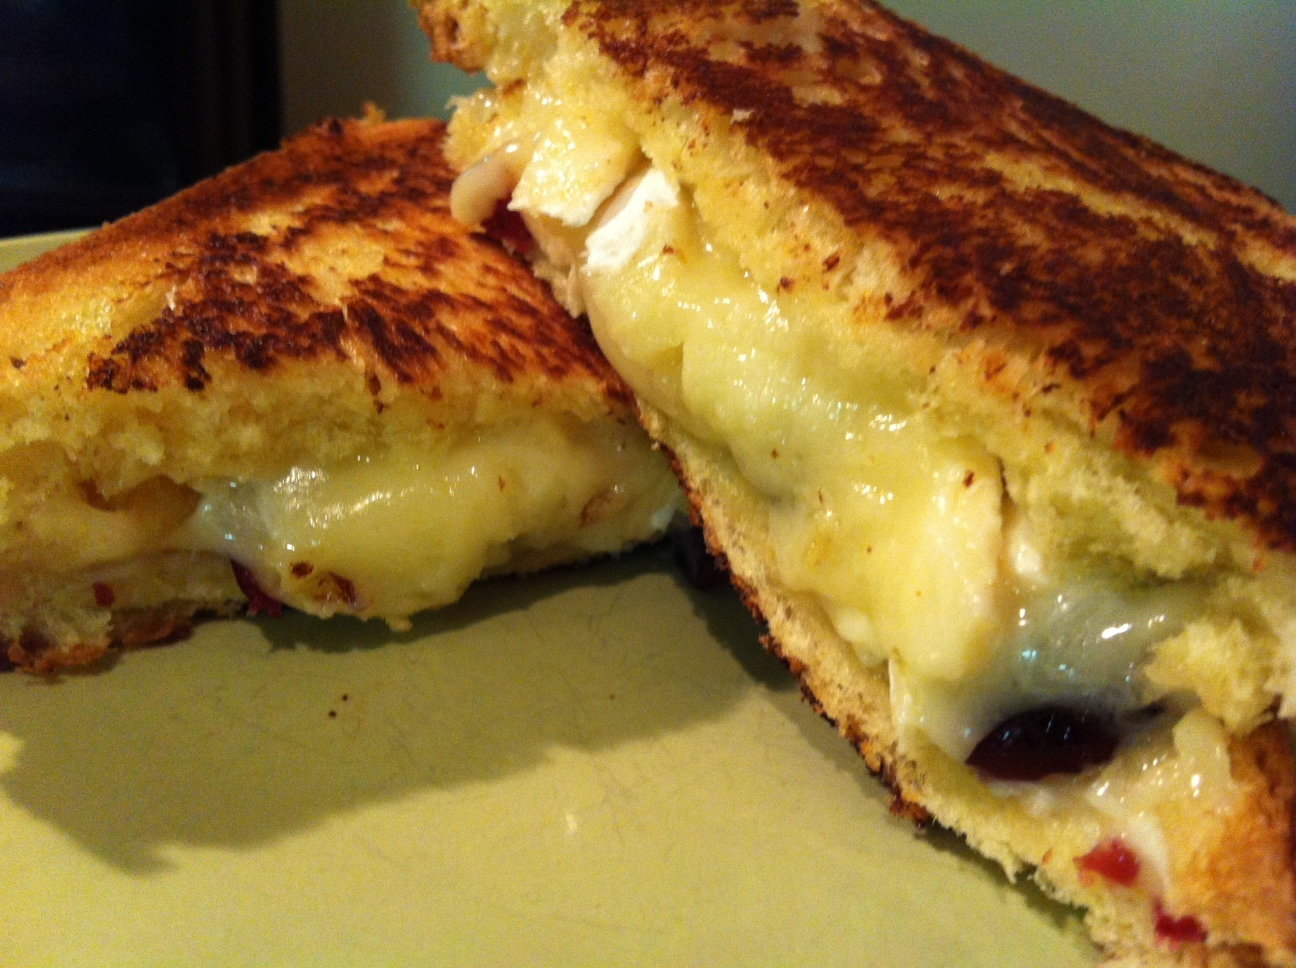 Let's Give Peas a Chance: Cranberry Brie Grilled Cheese